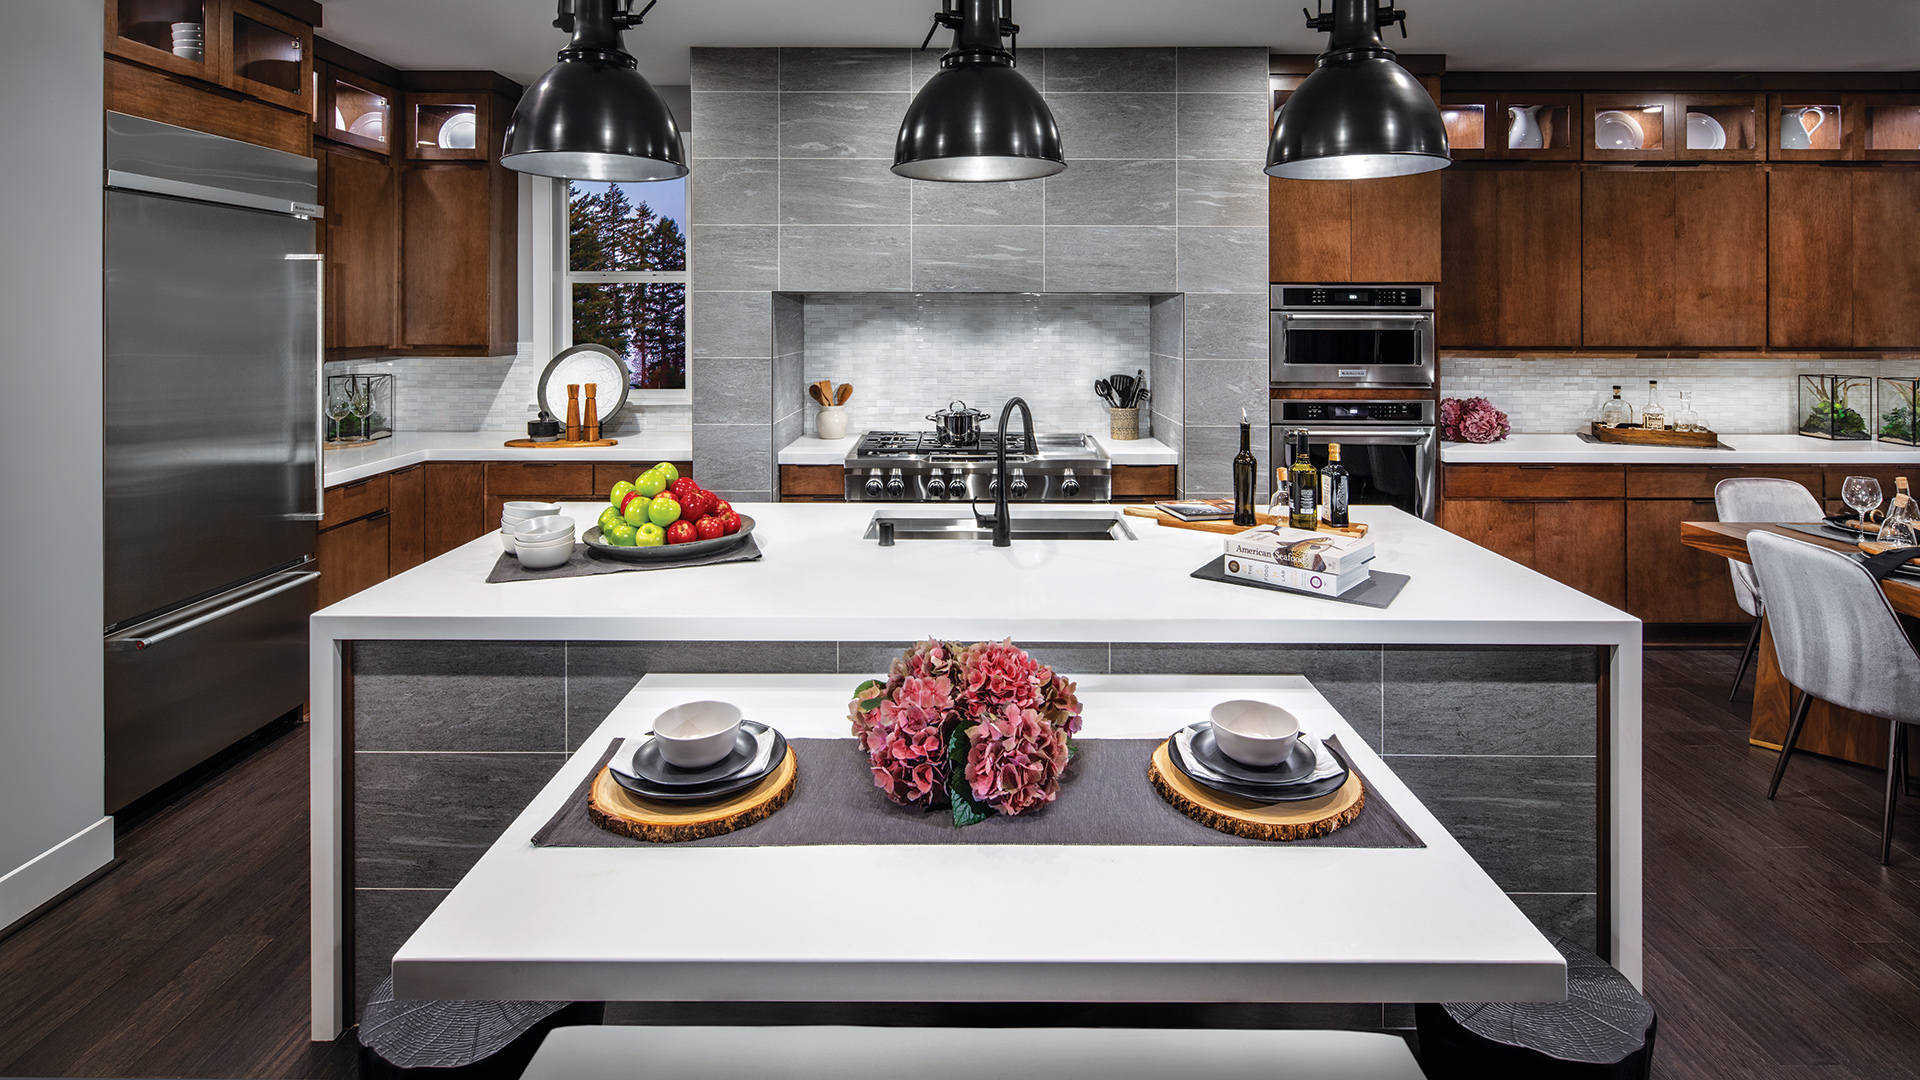 Create the kitchen of your dreams with the help of a designer at our Design Studio